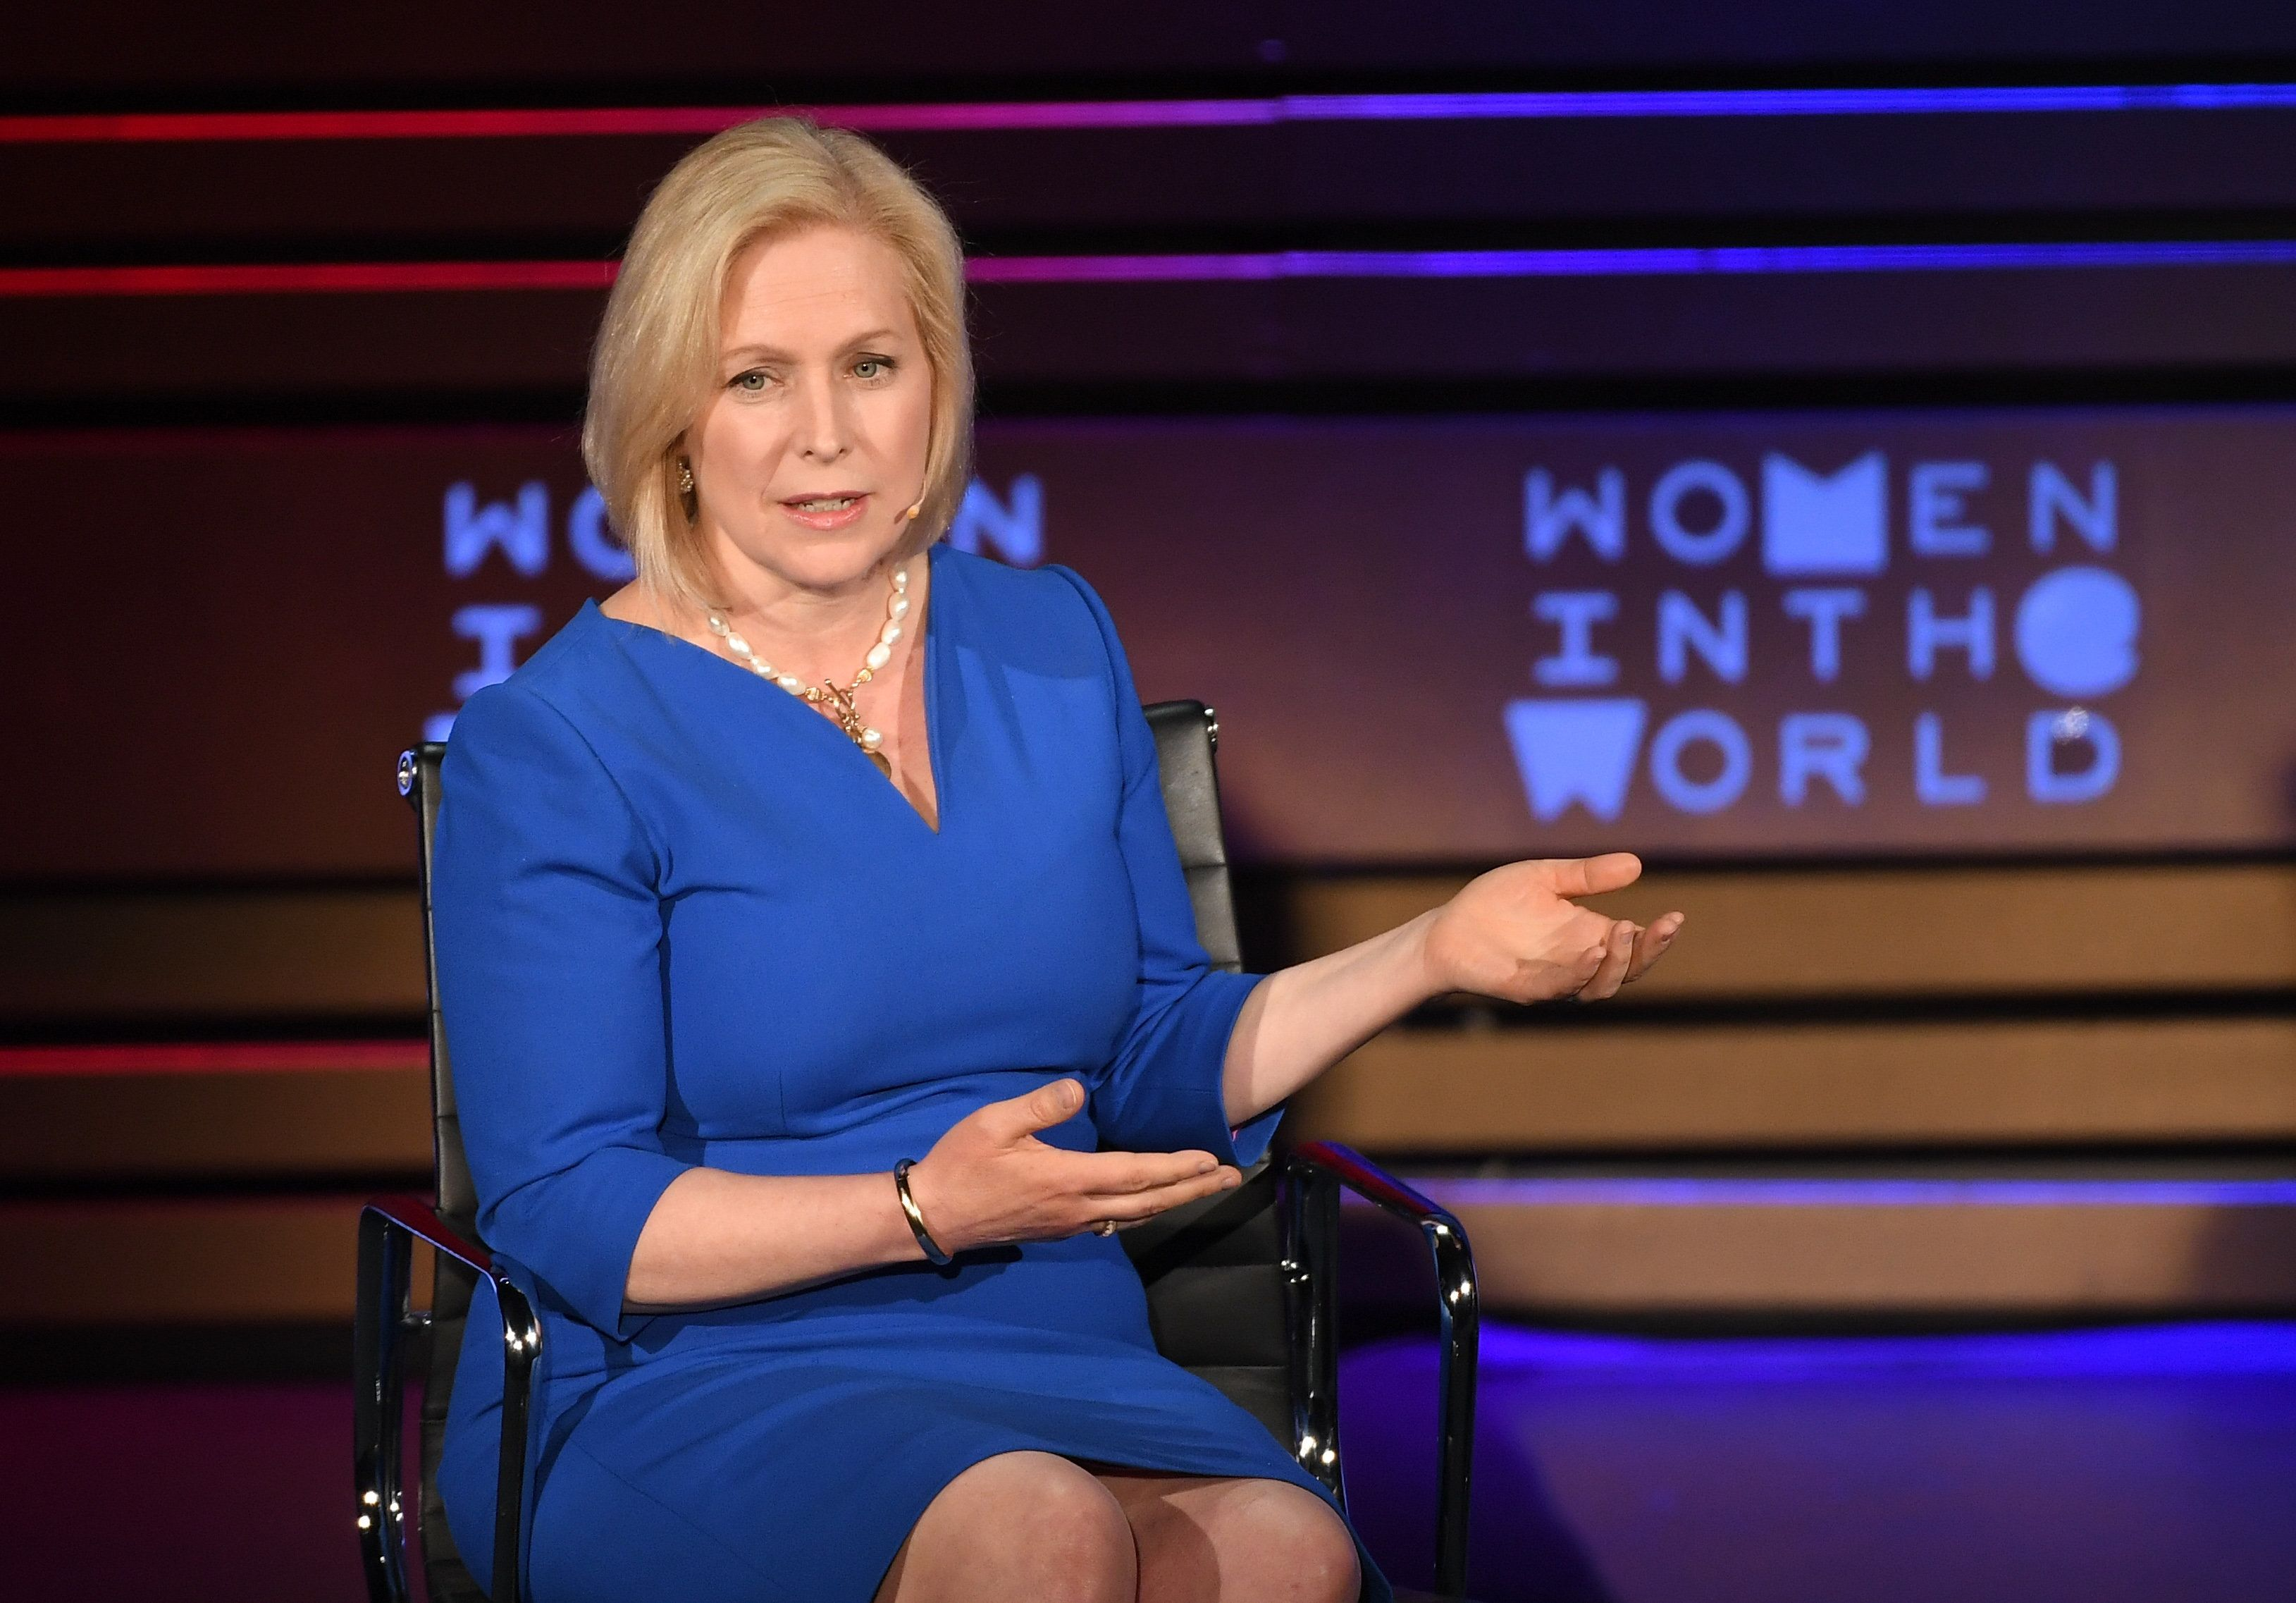 Sen. Kirsten Gillibrand (D-N.Y.) was the first senator to publicly call on her colleague, Al Franken, to resign after numerou